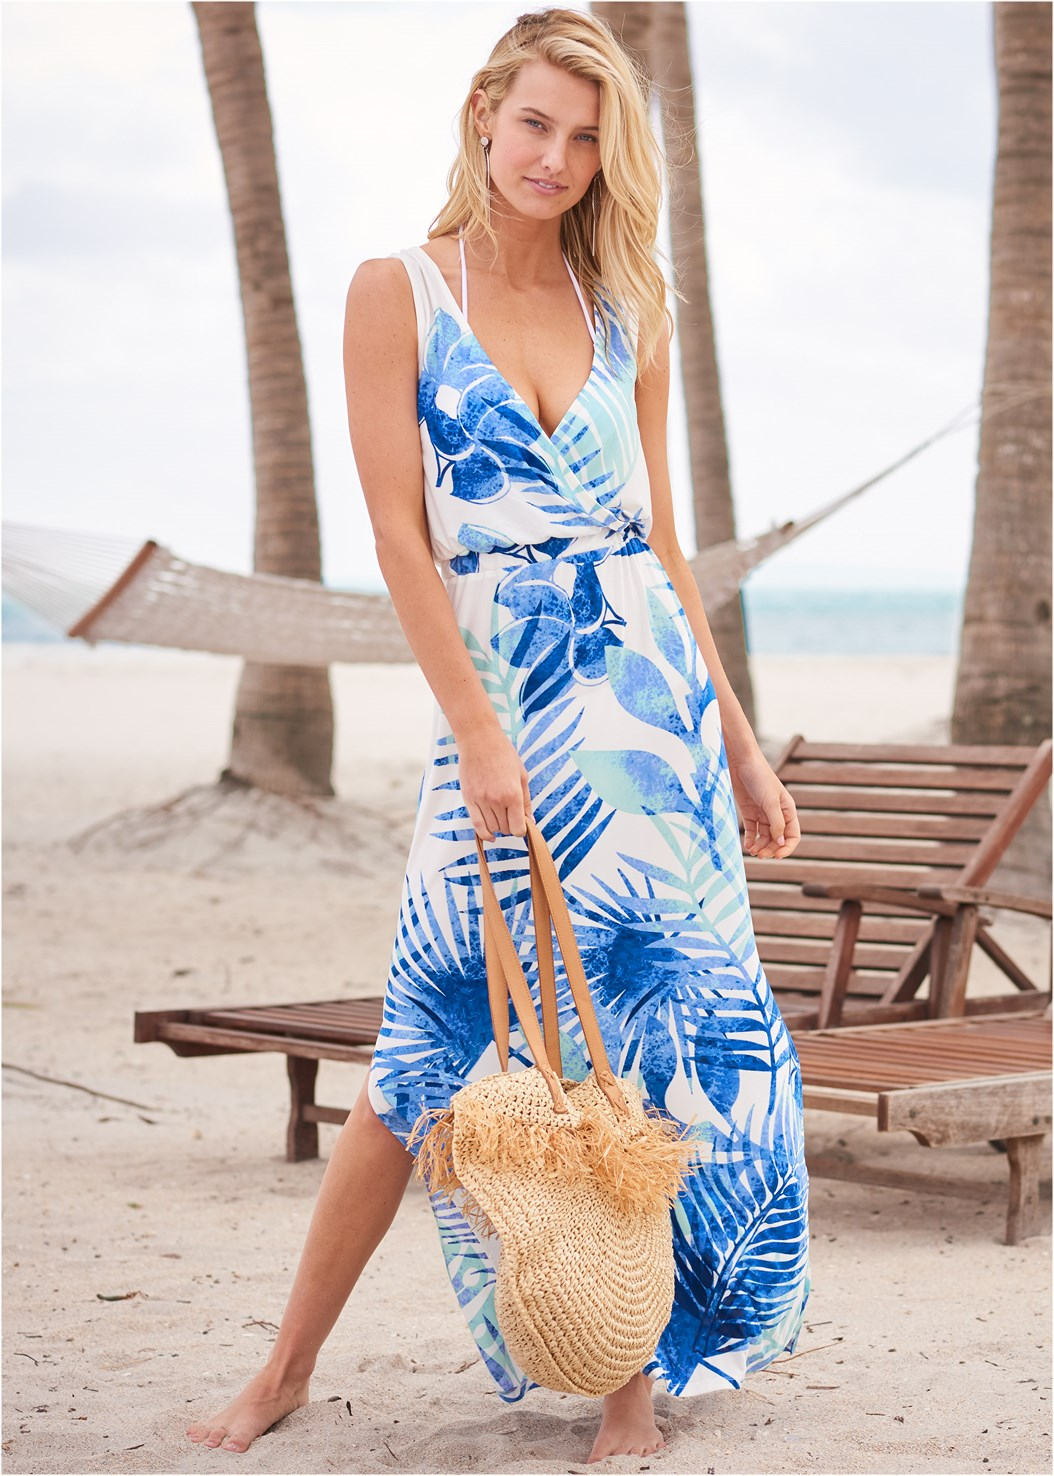 Cinch Waist Cover-Up Dress,Triangle String Bikini Top,Scoop Front Classic Bikini Bottom ,Straw Bag